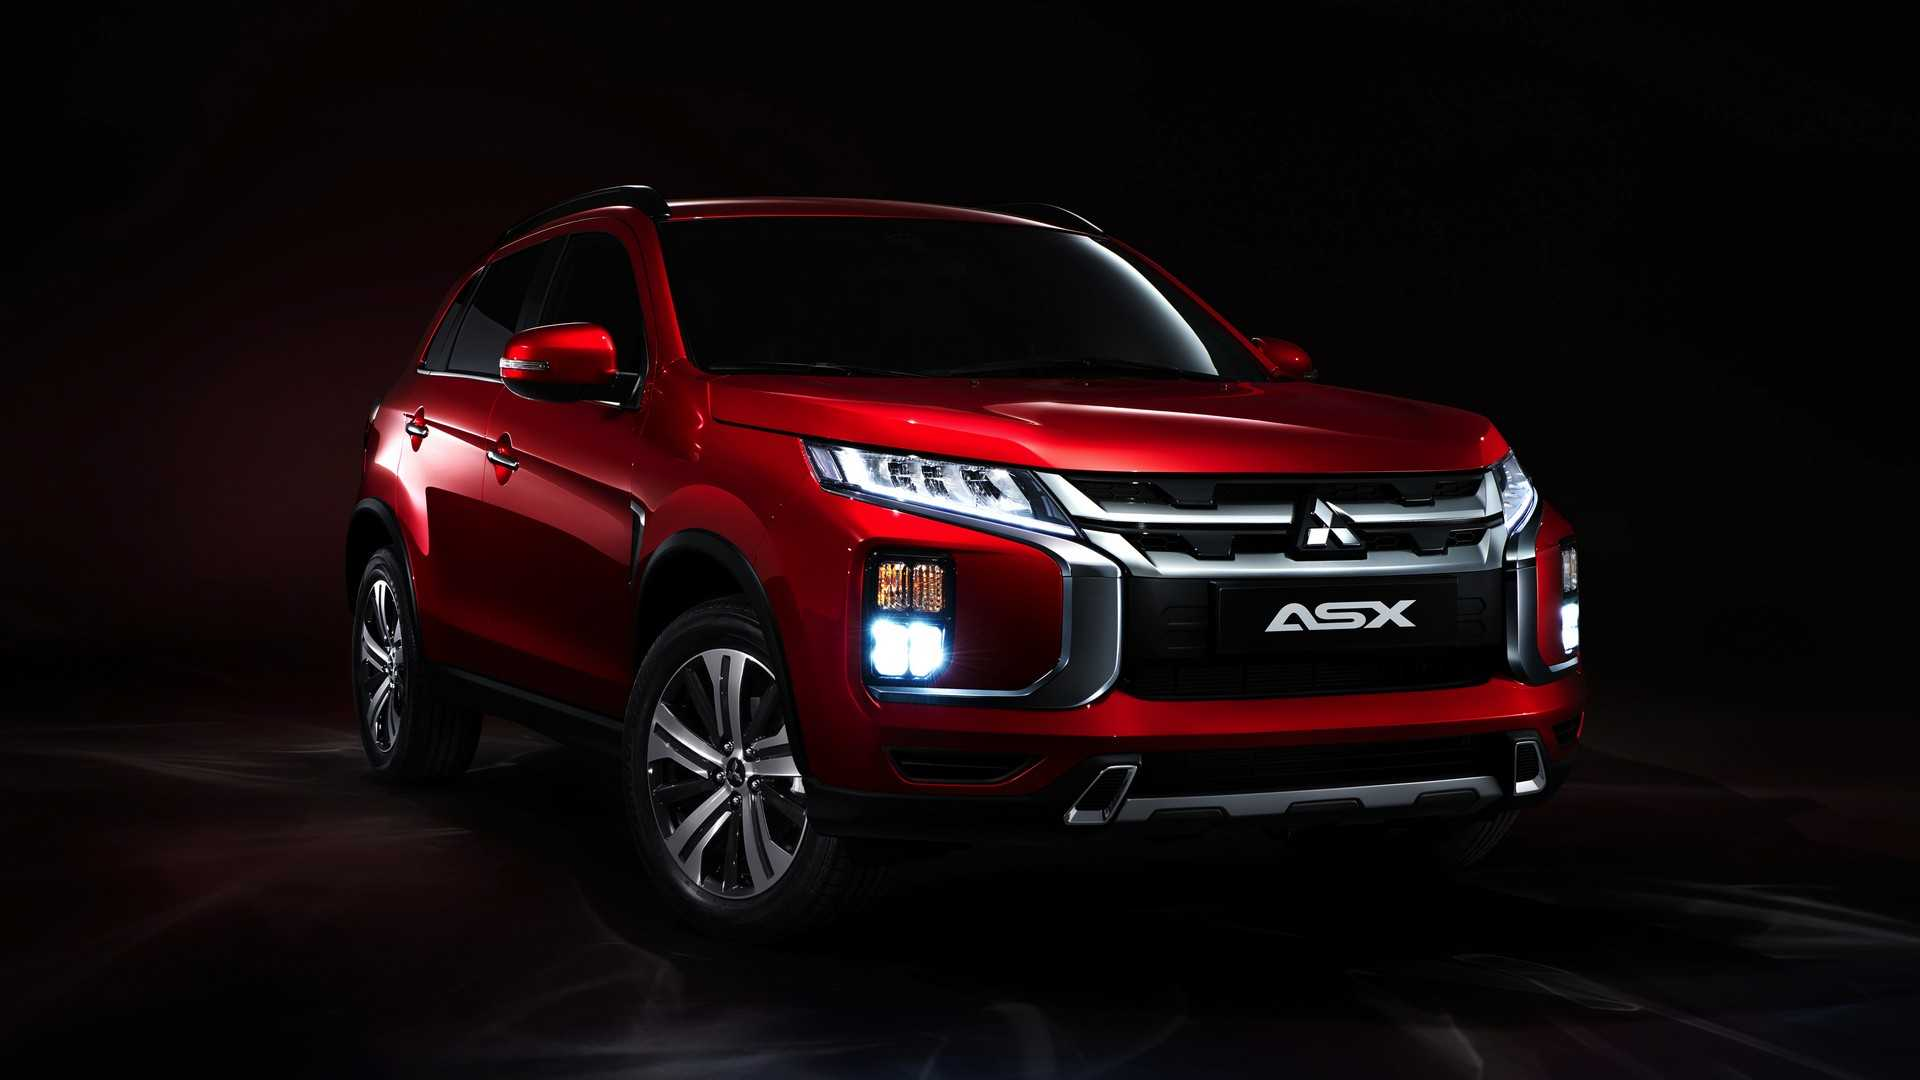 75 New New Mitsubishi Asx 2020 Redesign And Review